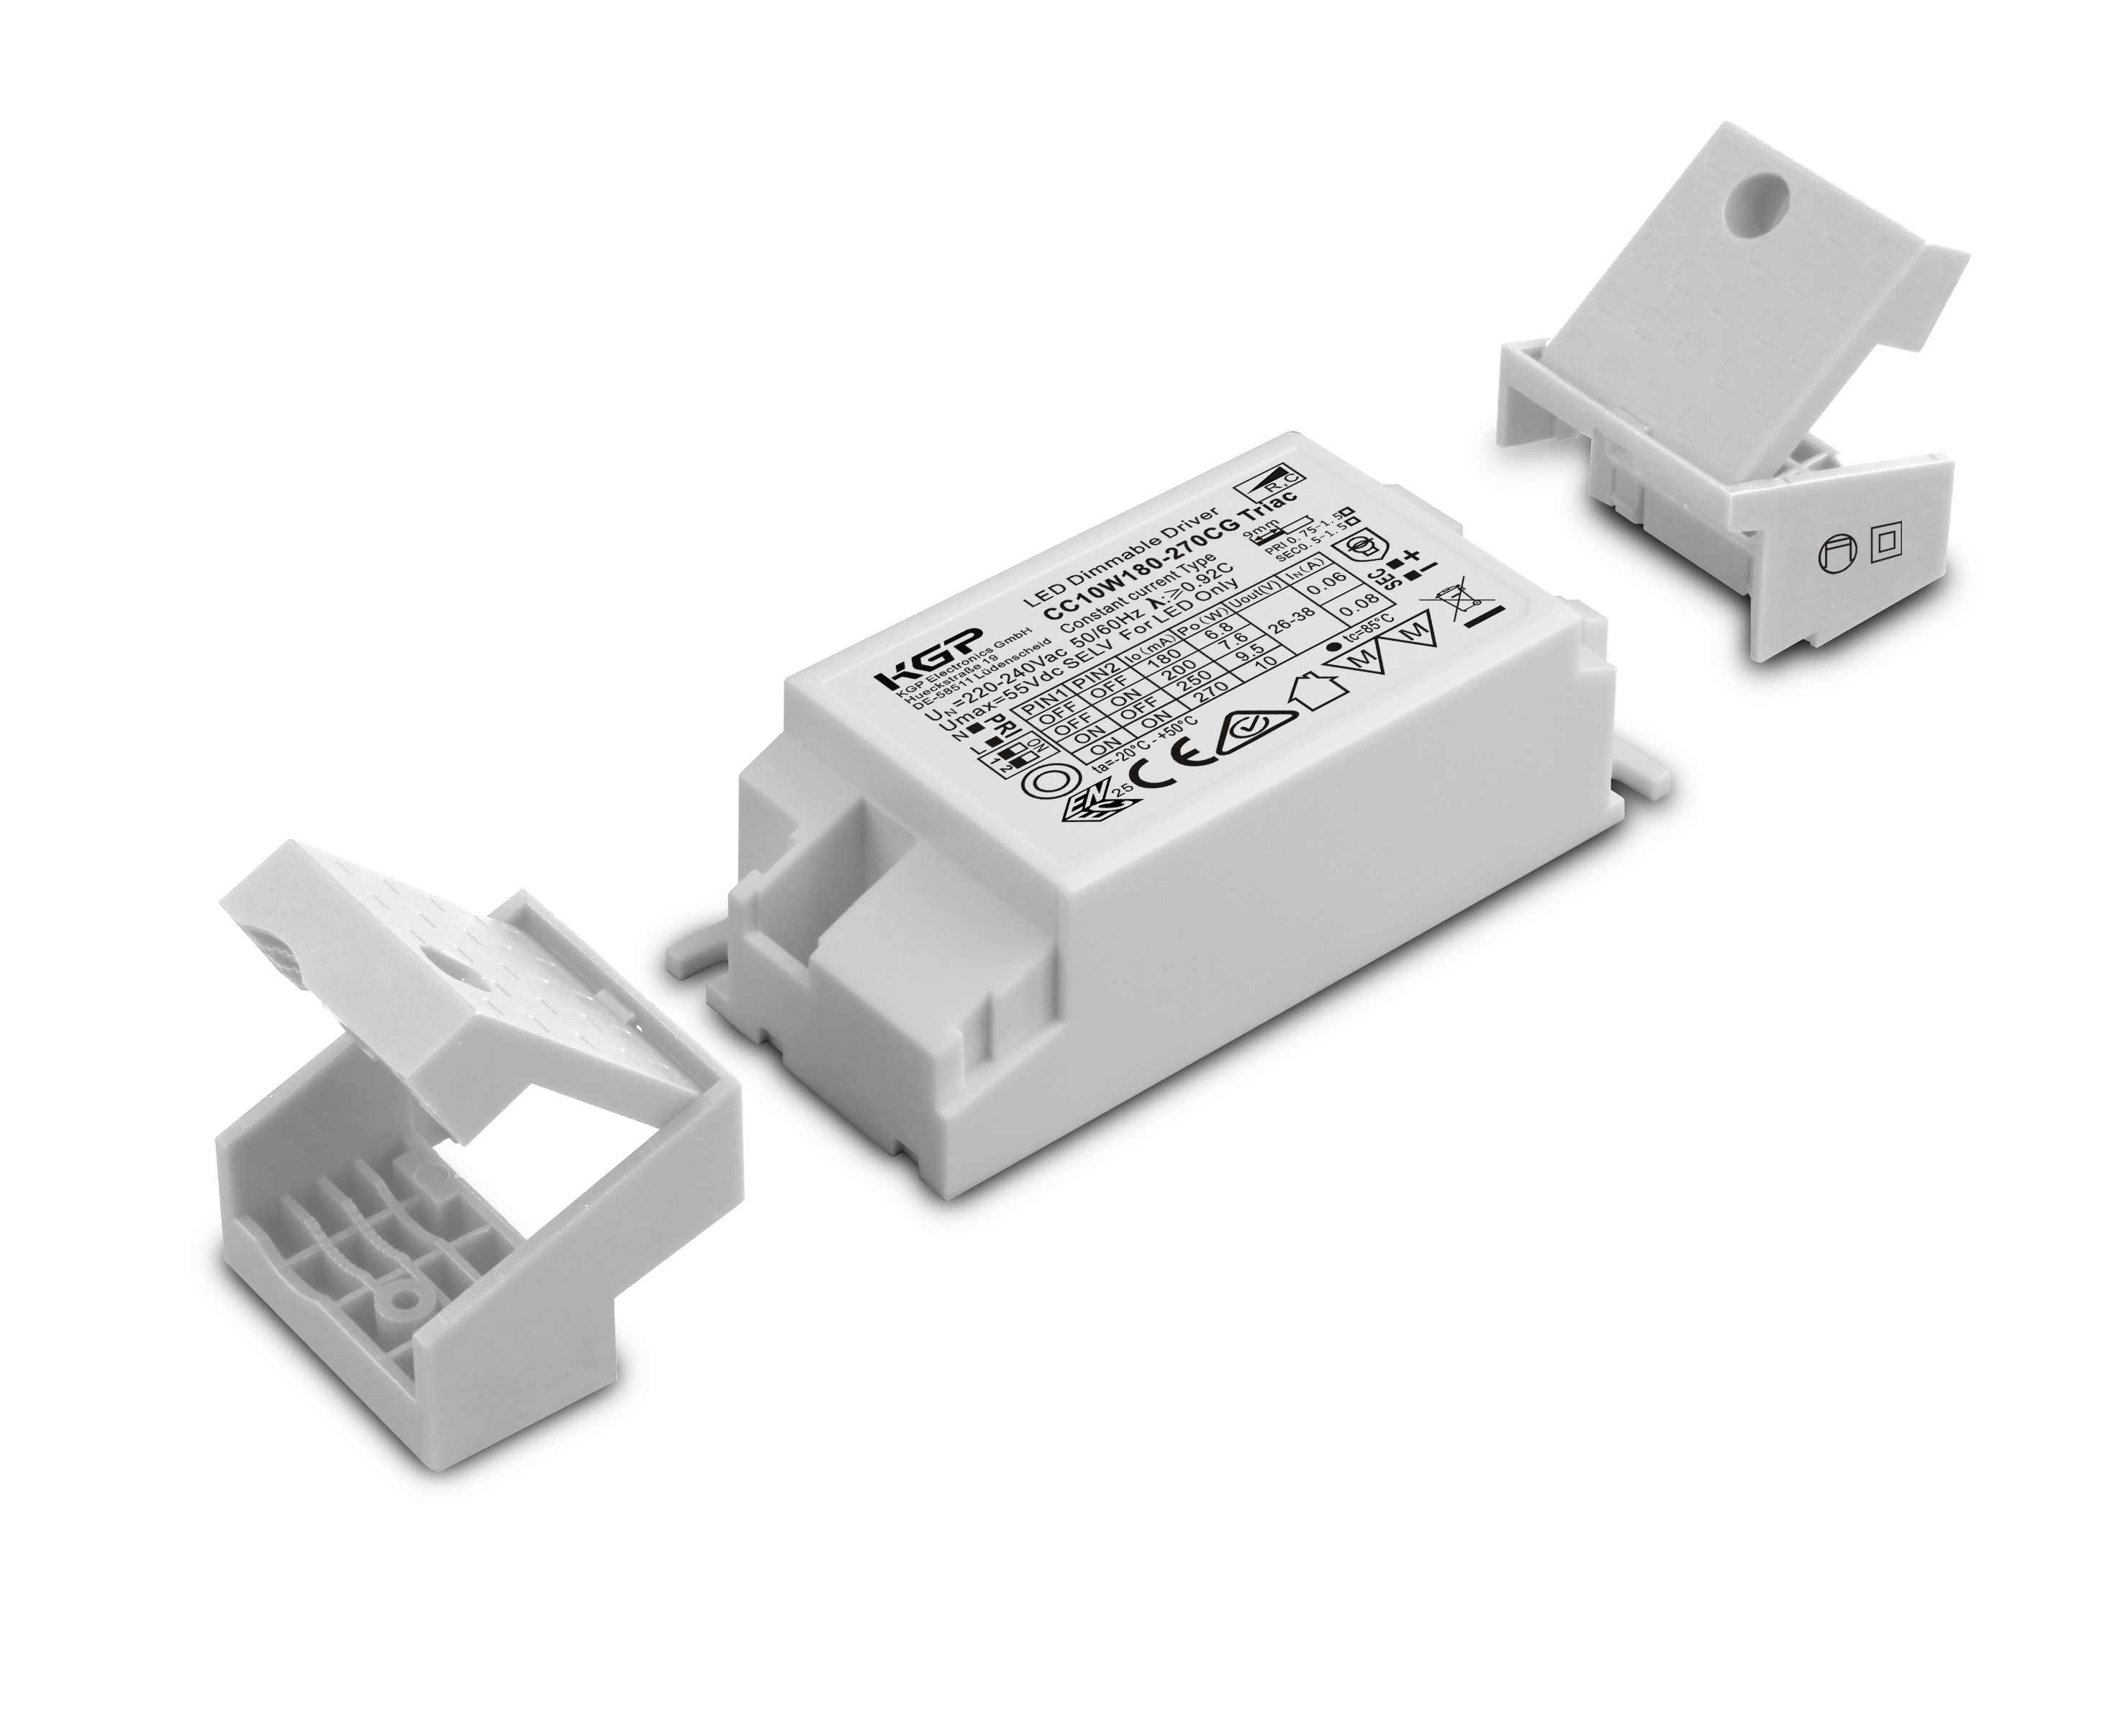 Dimmable Triac Constant Current Led Driver With 10w And 180 270ma Adjustable Load 1 2